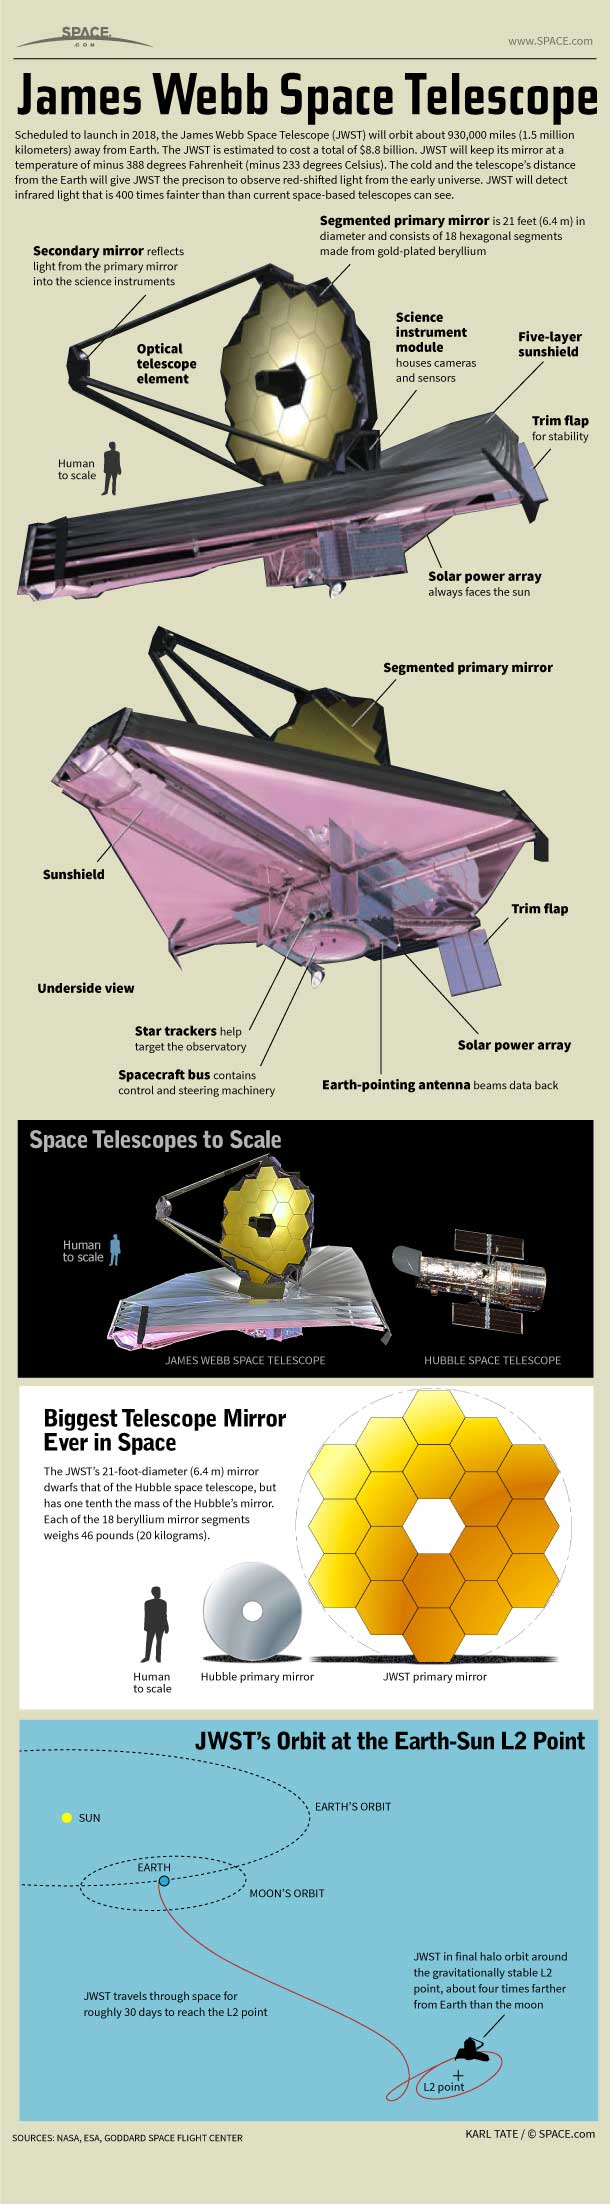 james-webb-space-telescope-2